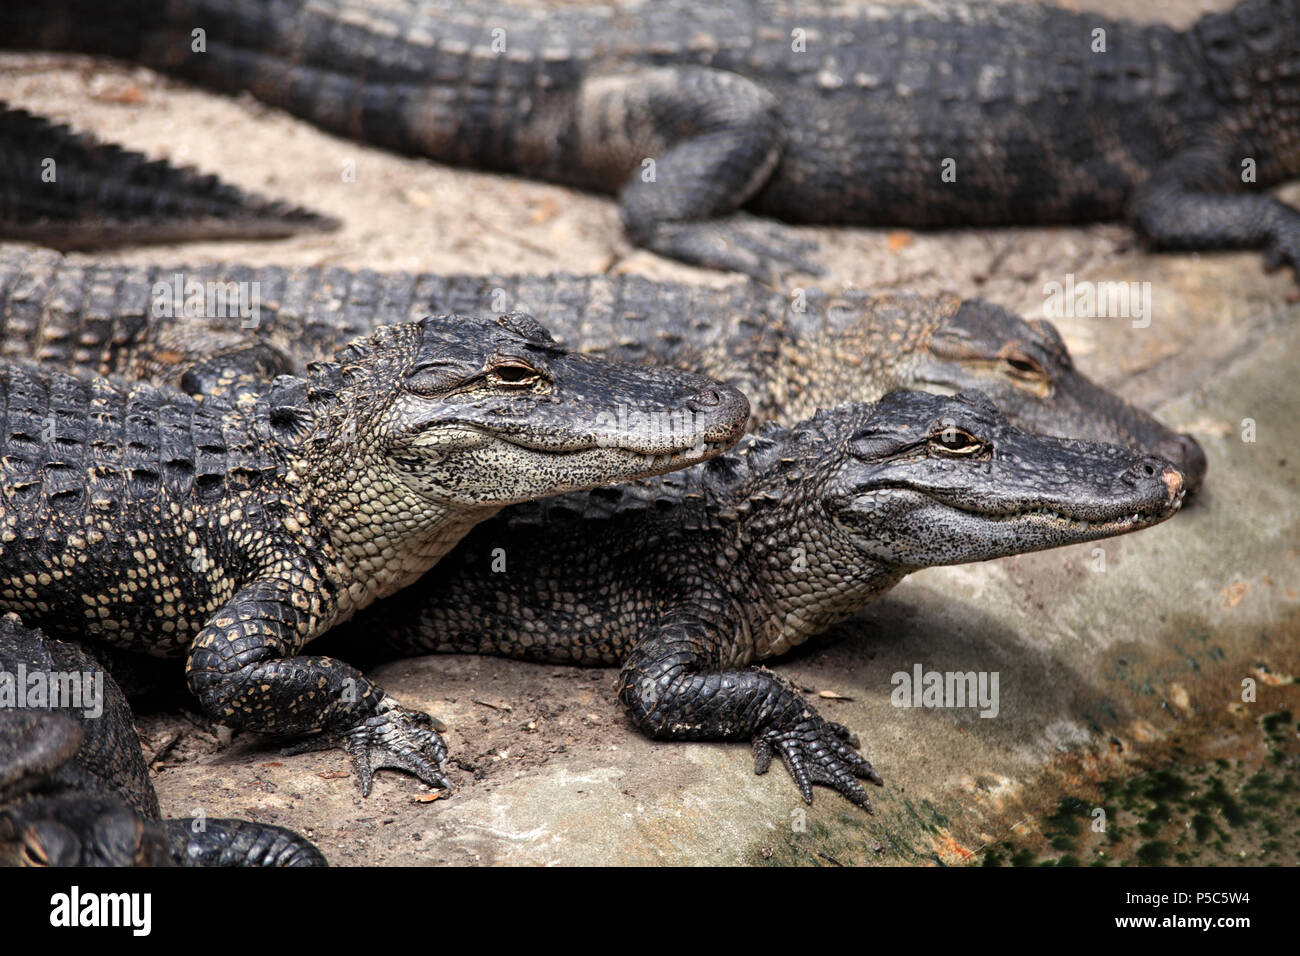 Close up shot of alligators resting by water - Stock Image